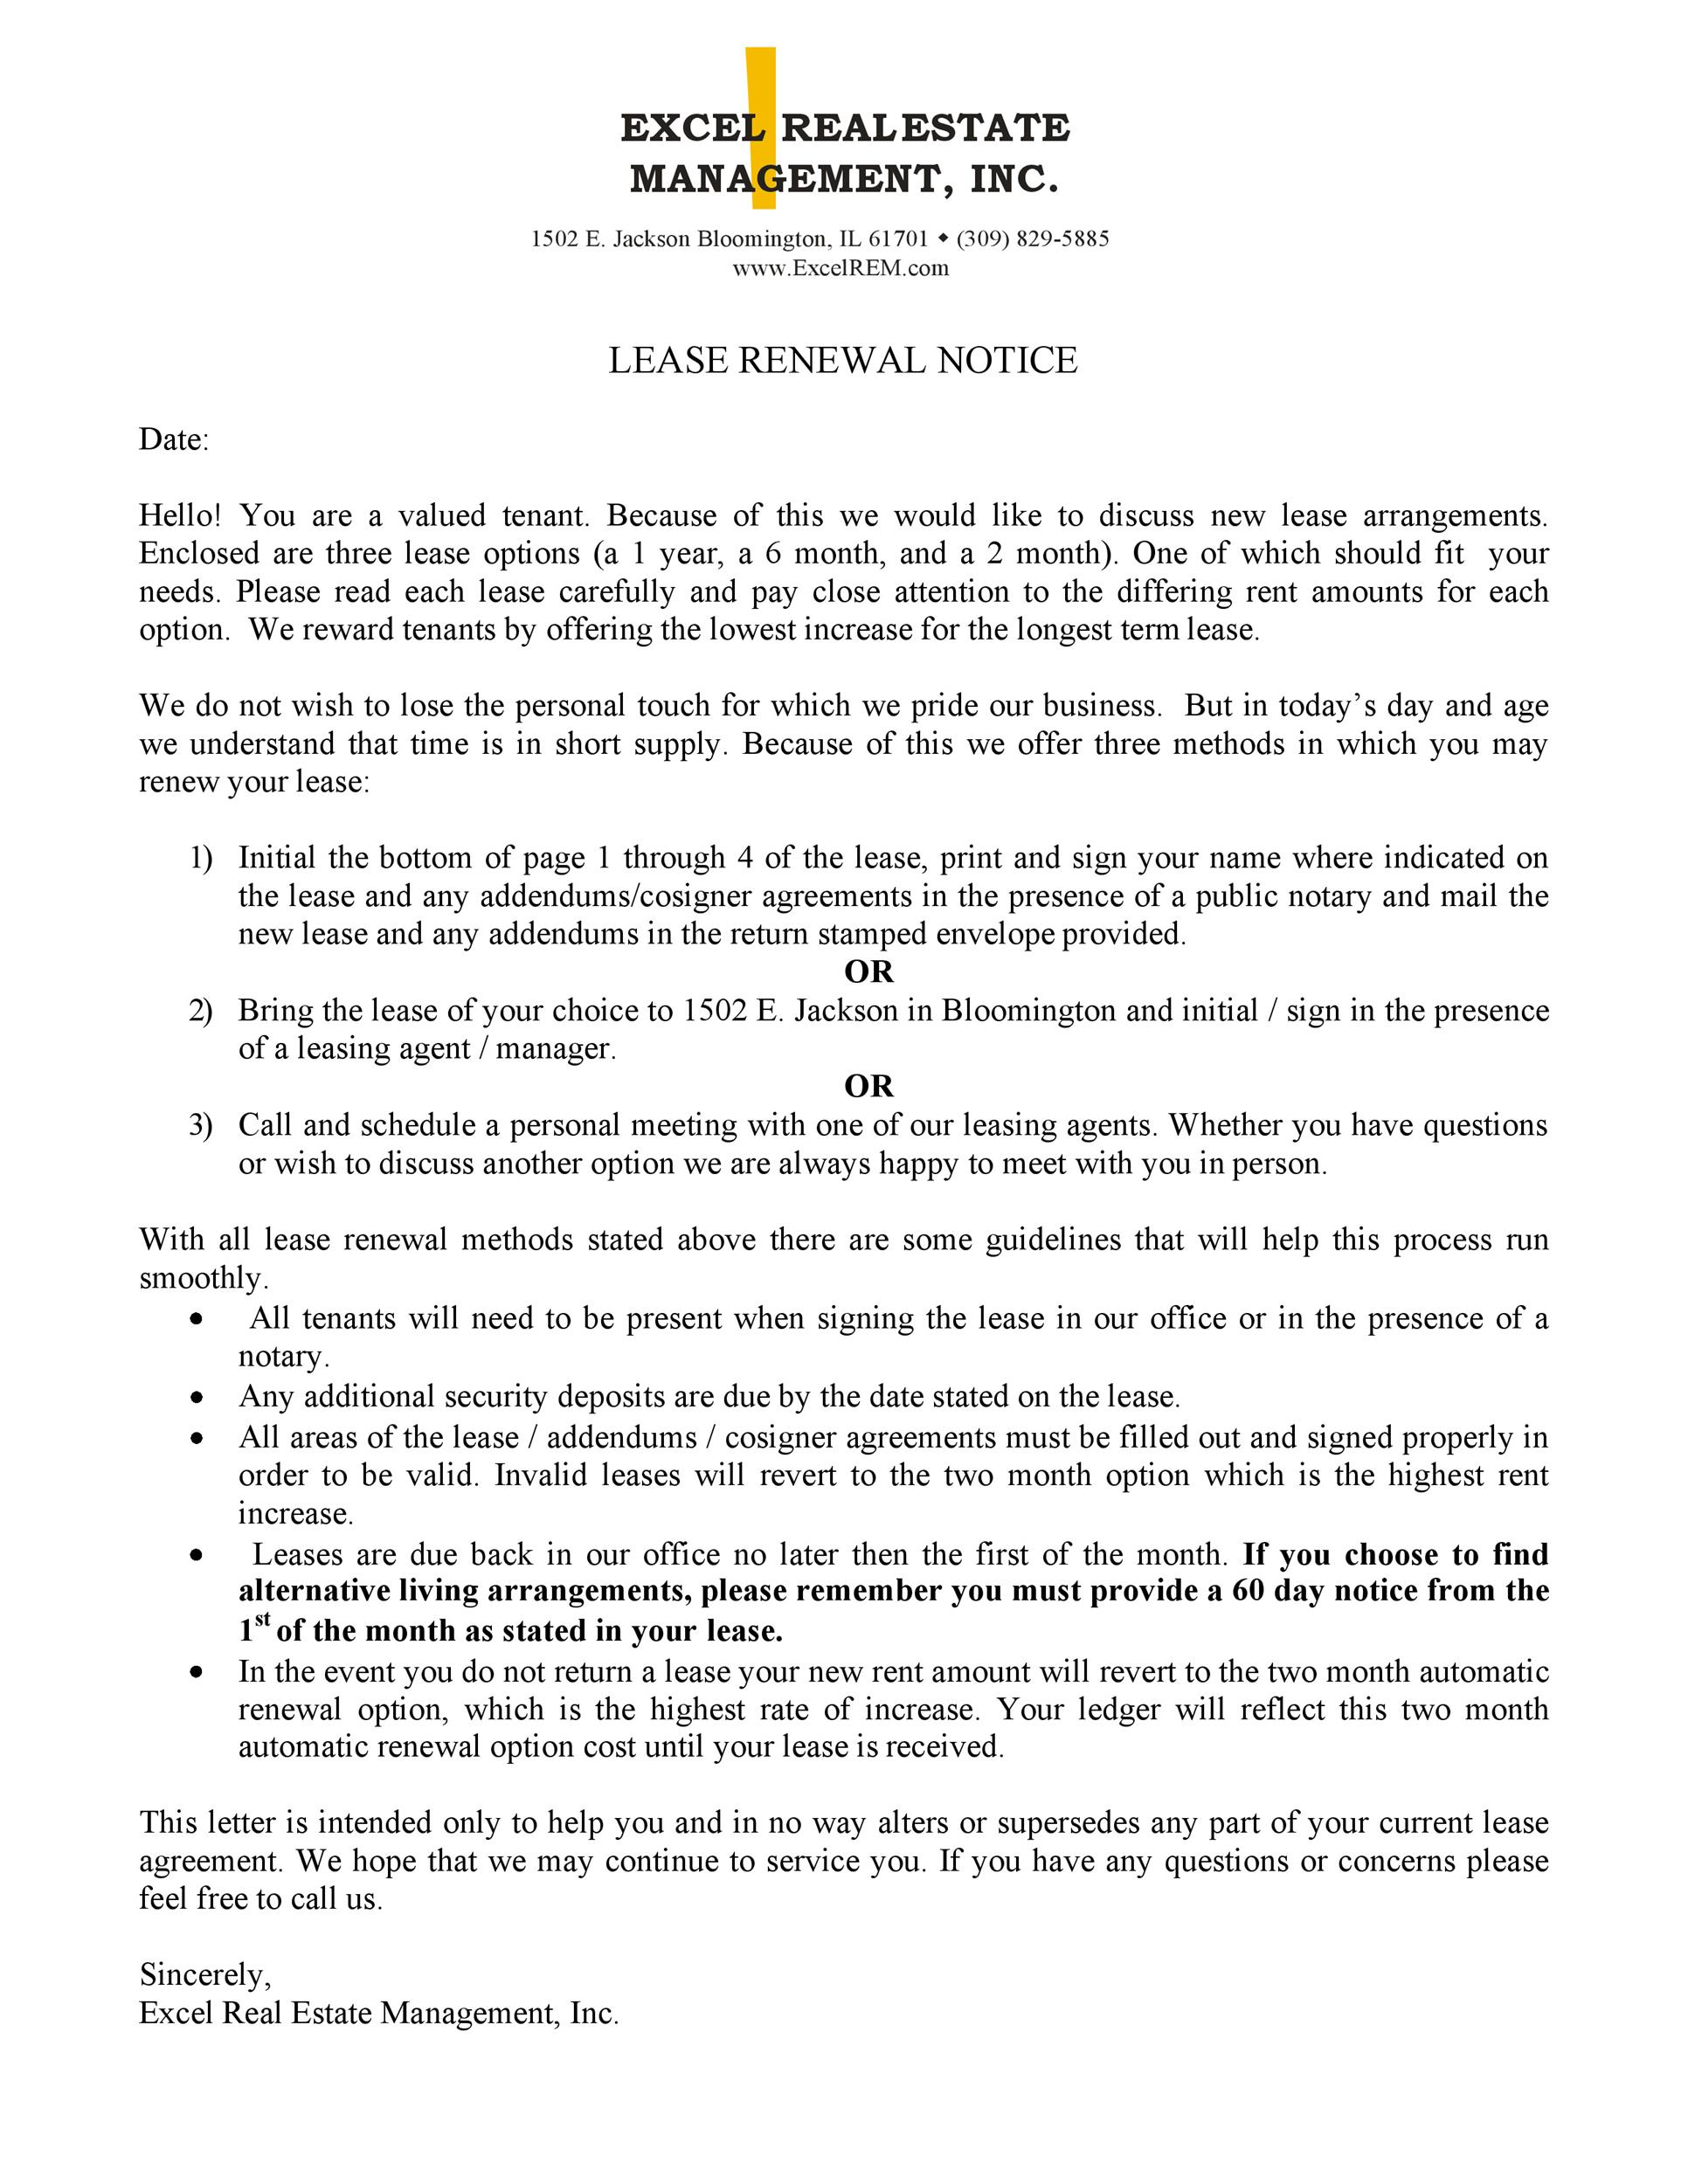 Free lease renewal letter 14